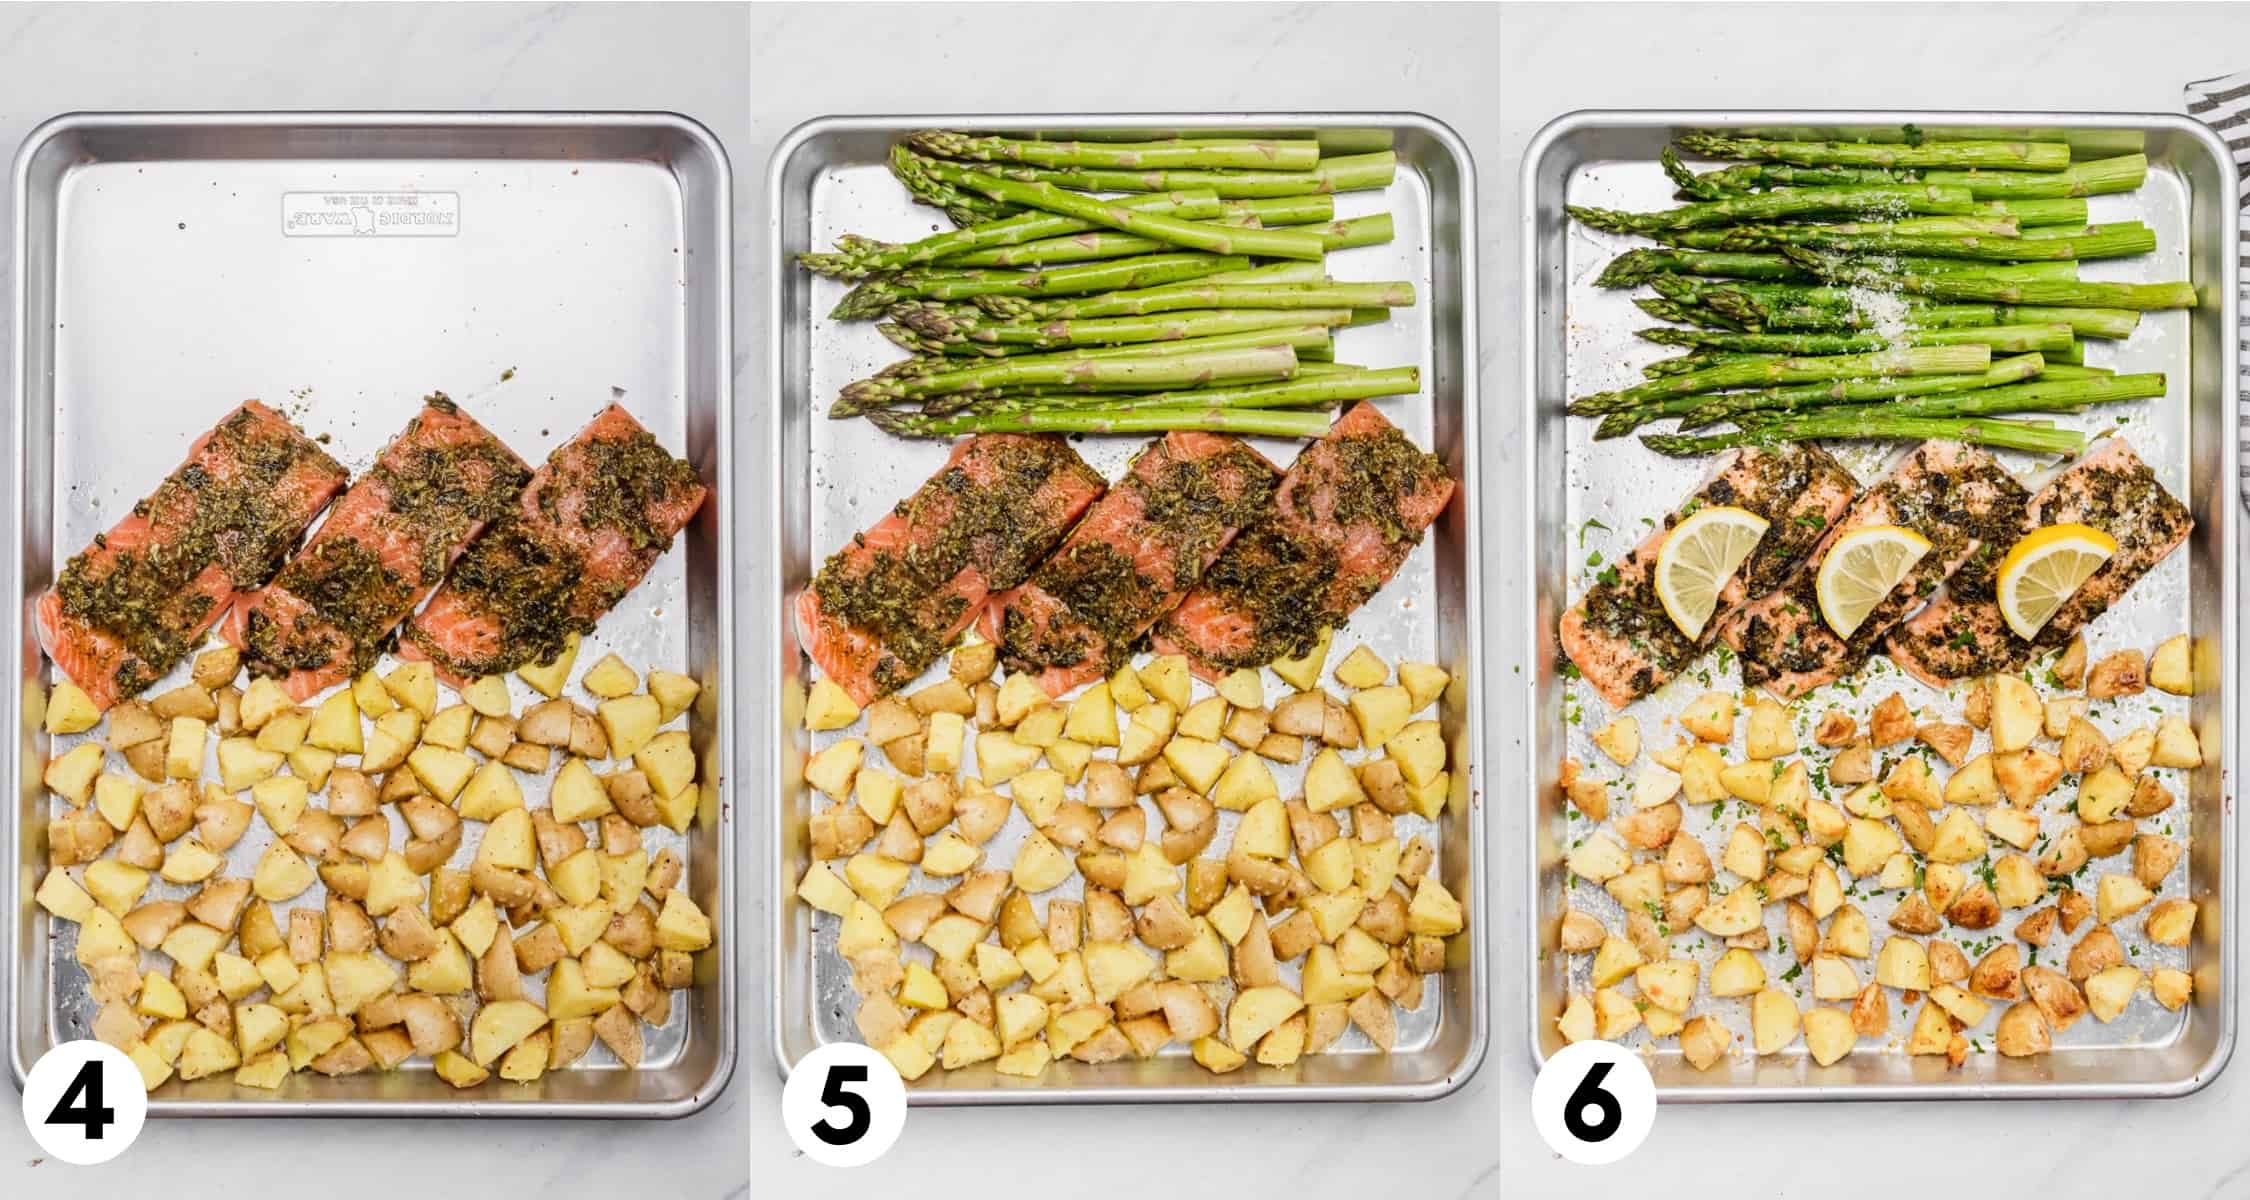 Salmon and potatoes on sheet pan with asparagus.